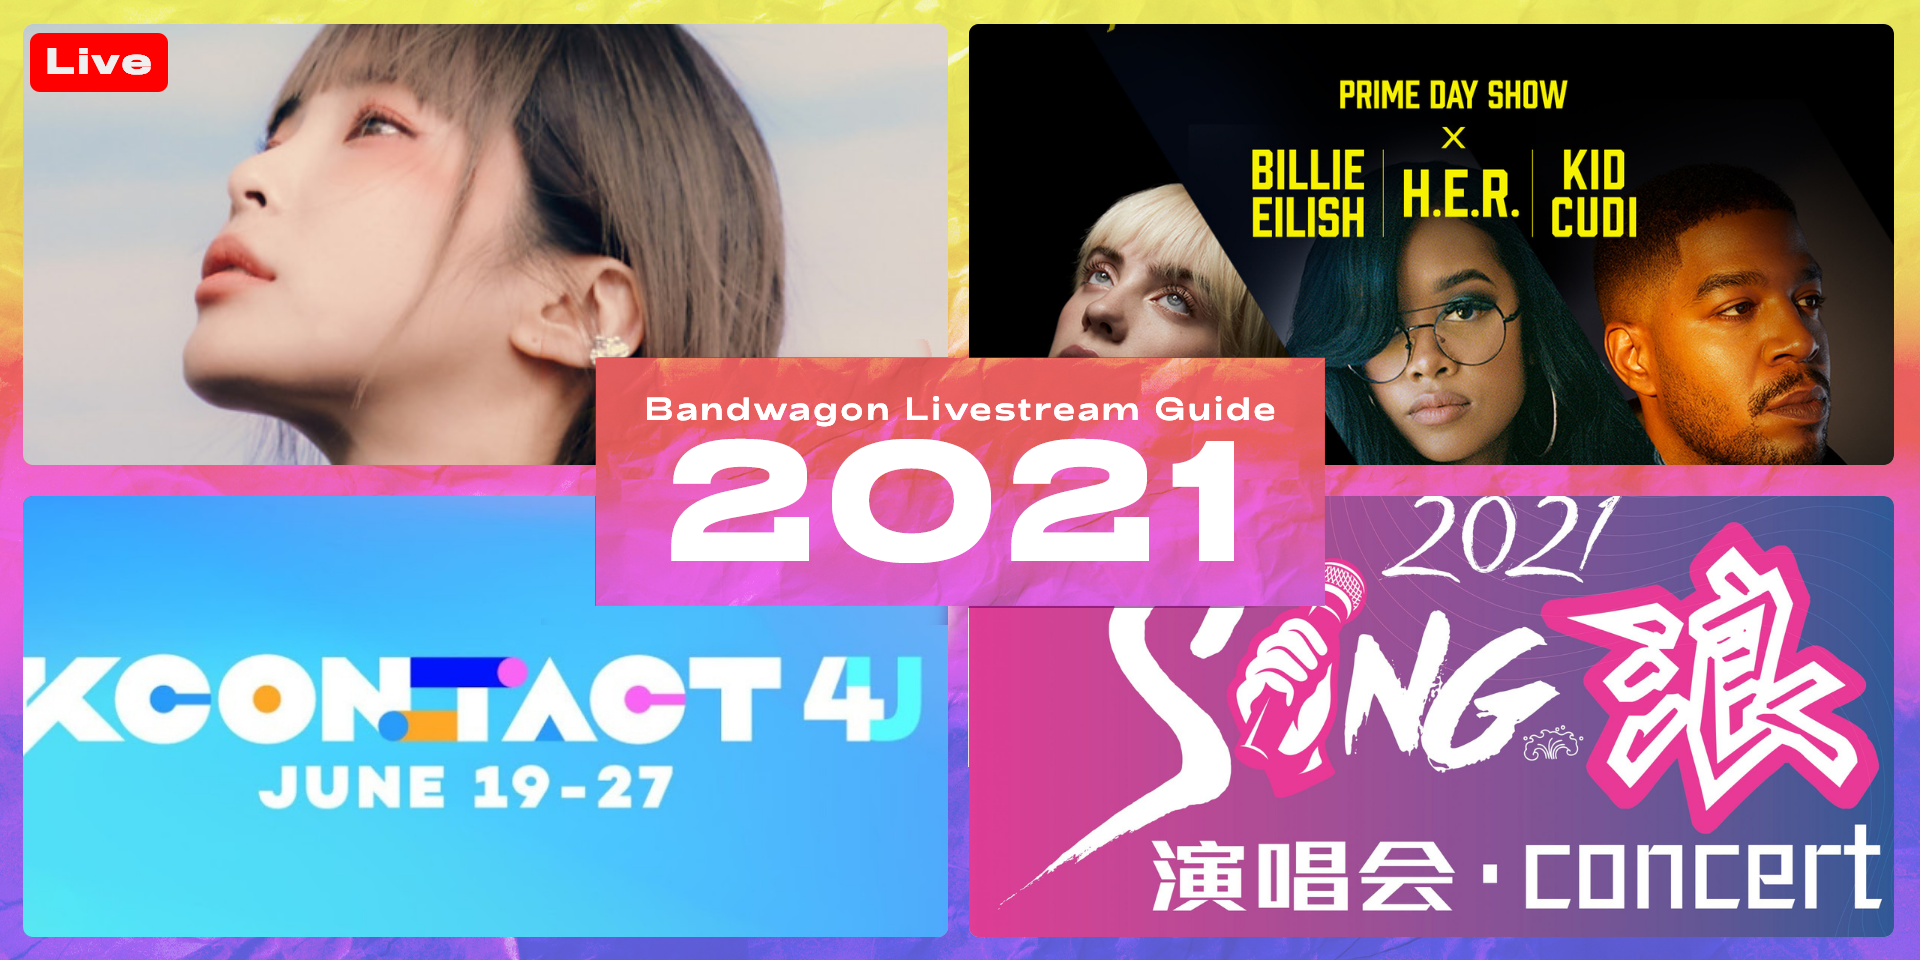 Online concerts and festivals to stream in 2021 - Sing Lang, Prime Day Show, K-Pop SuperFest 2021, KCON:TACT 4 U, and more